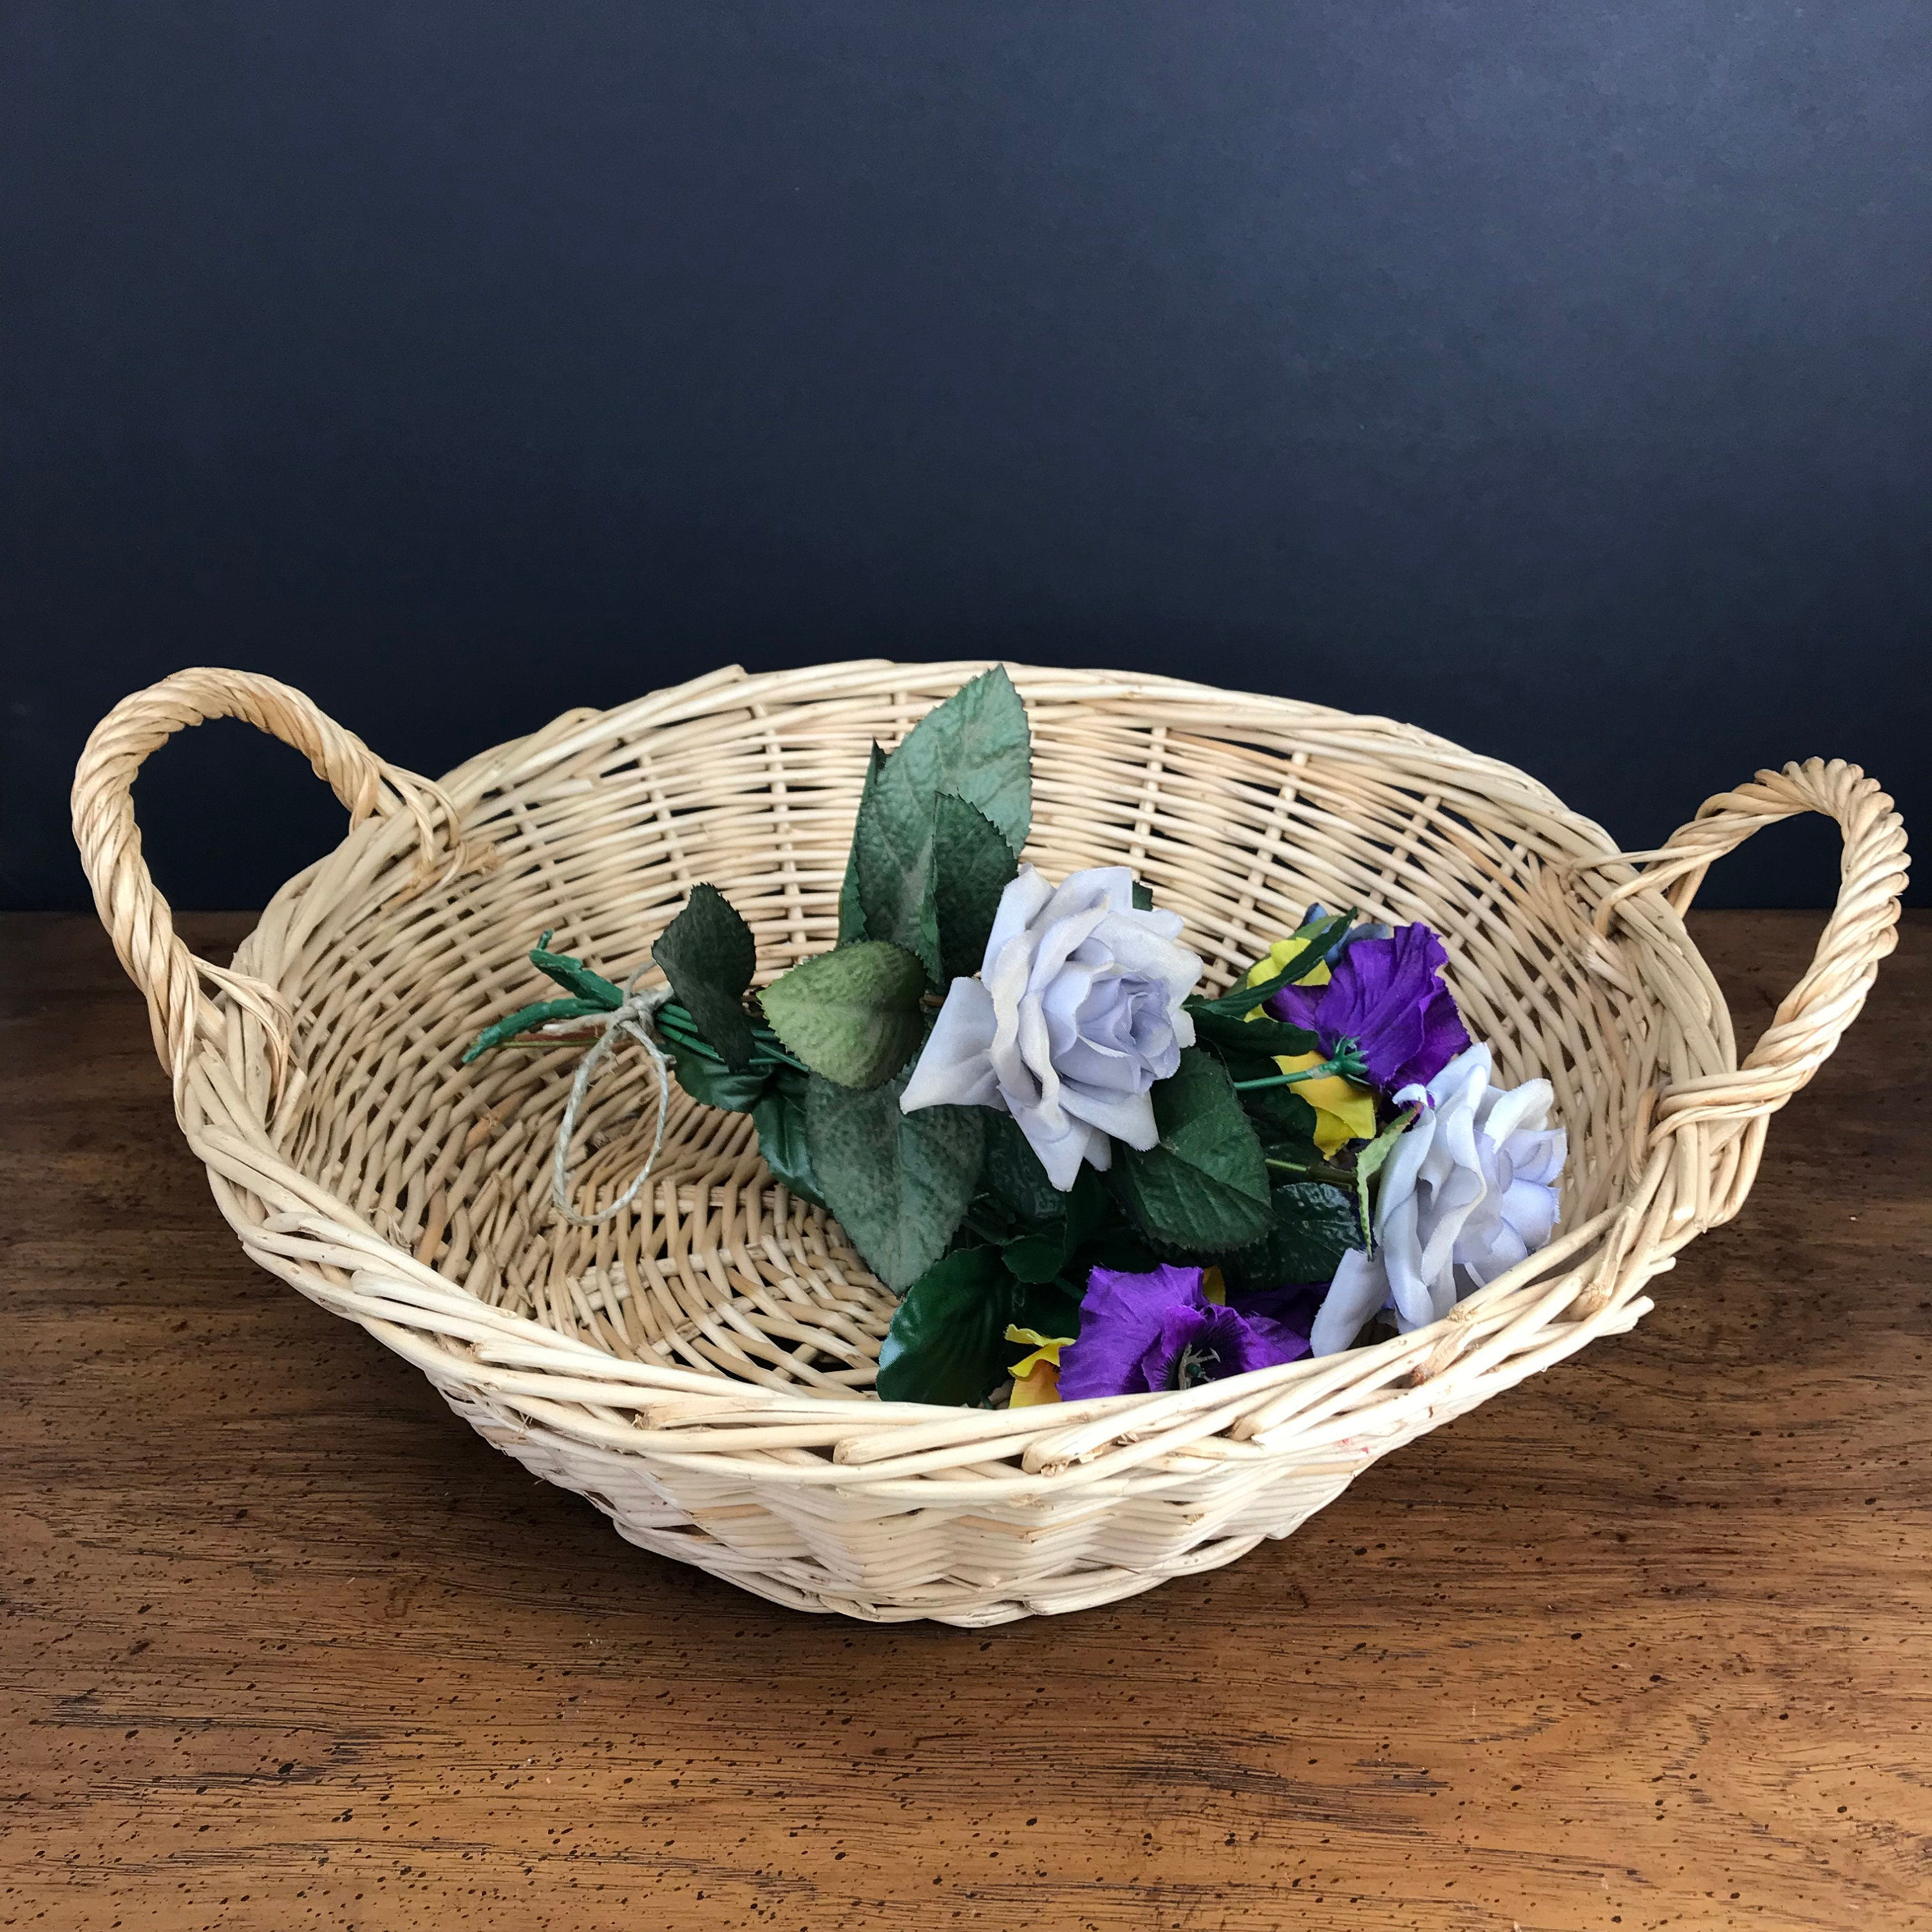 Garden Vintage Flower Basket Gathering Woven Harvest Rattan Wicker HI2DE9